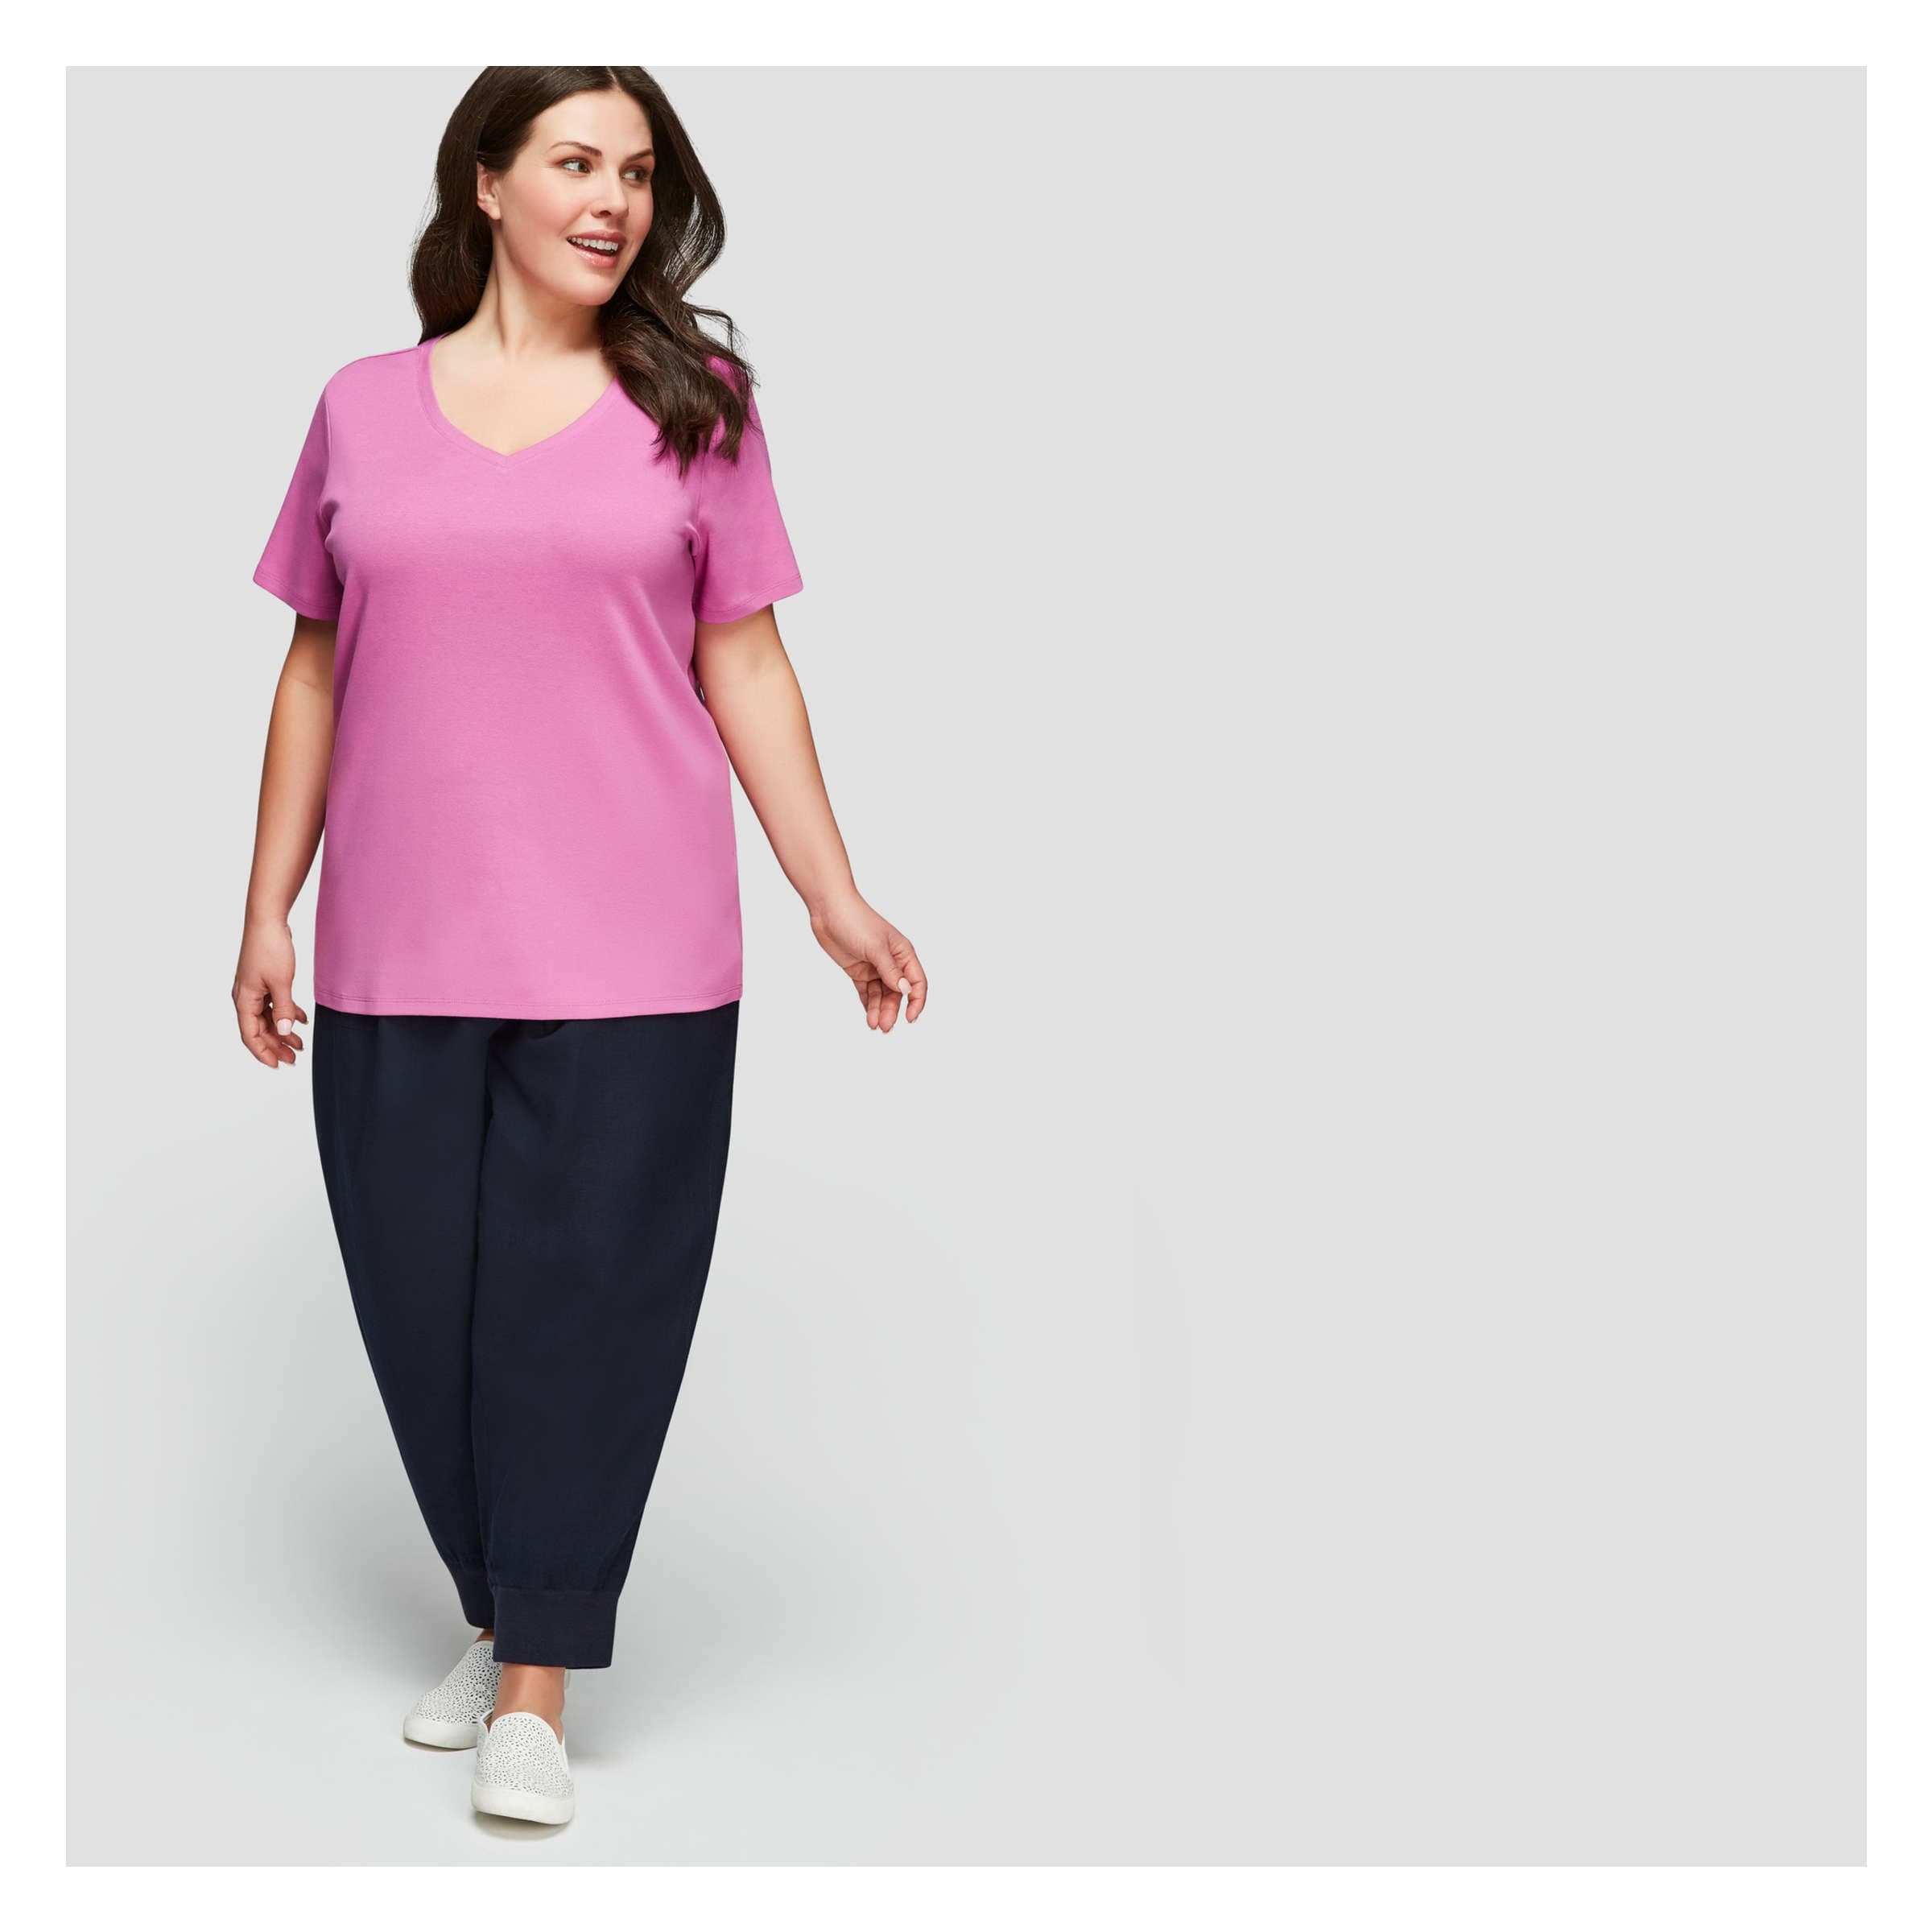 Essential V Neck Tee In Amethyst From Joe Fresh Pants Product Image